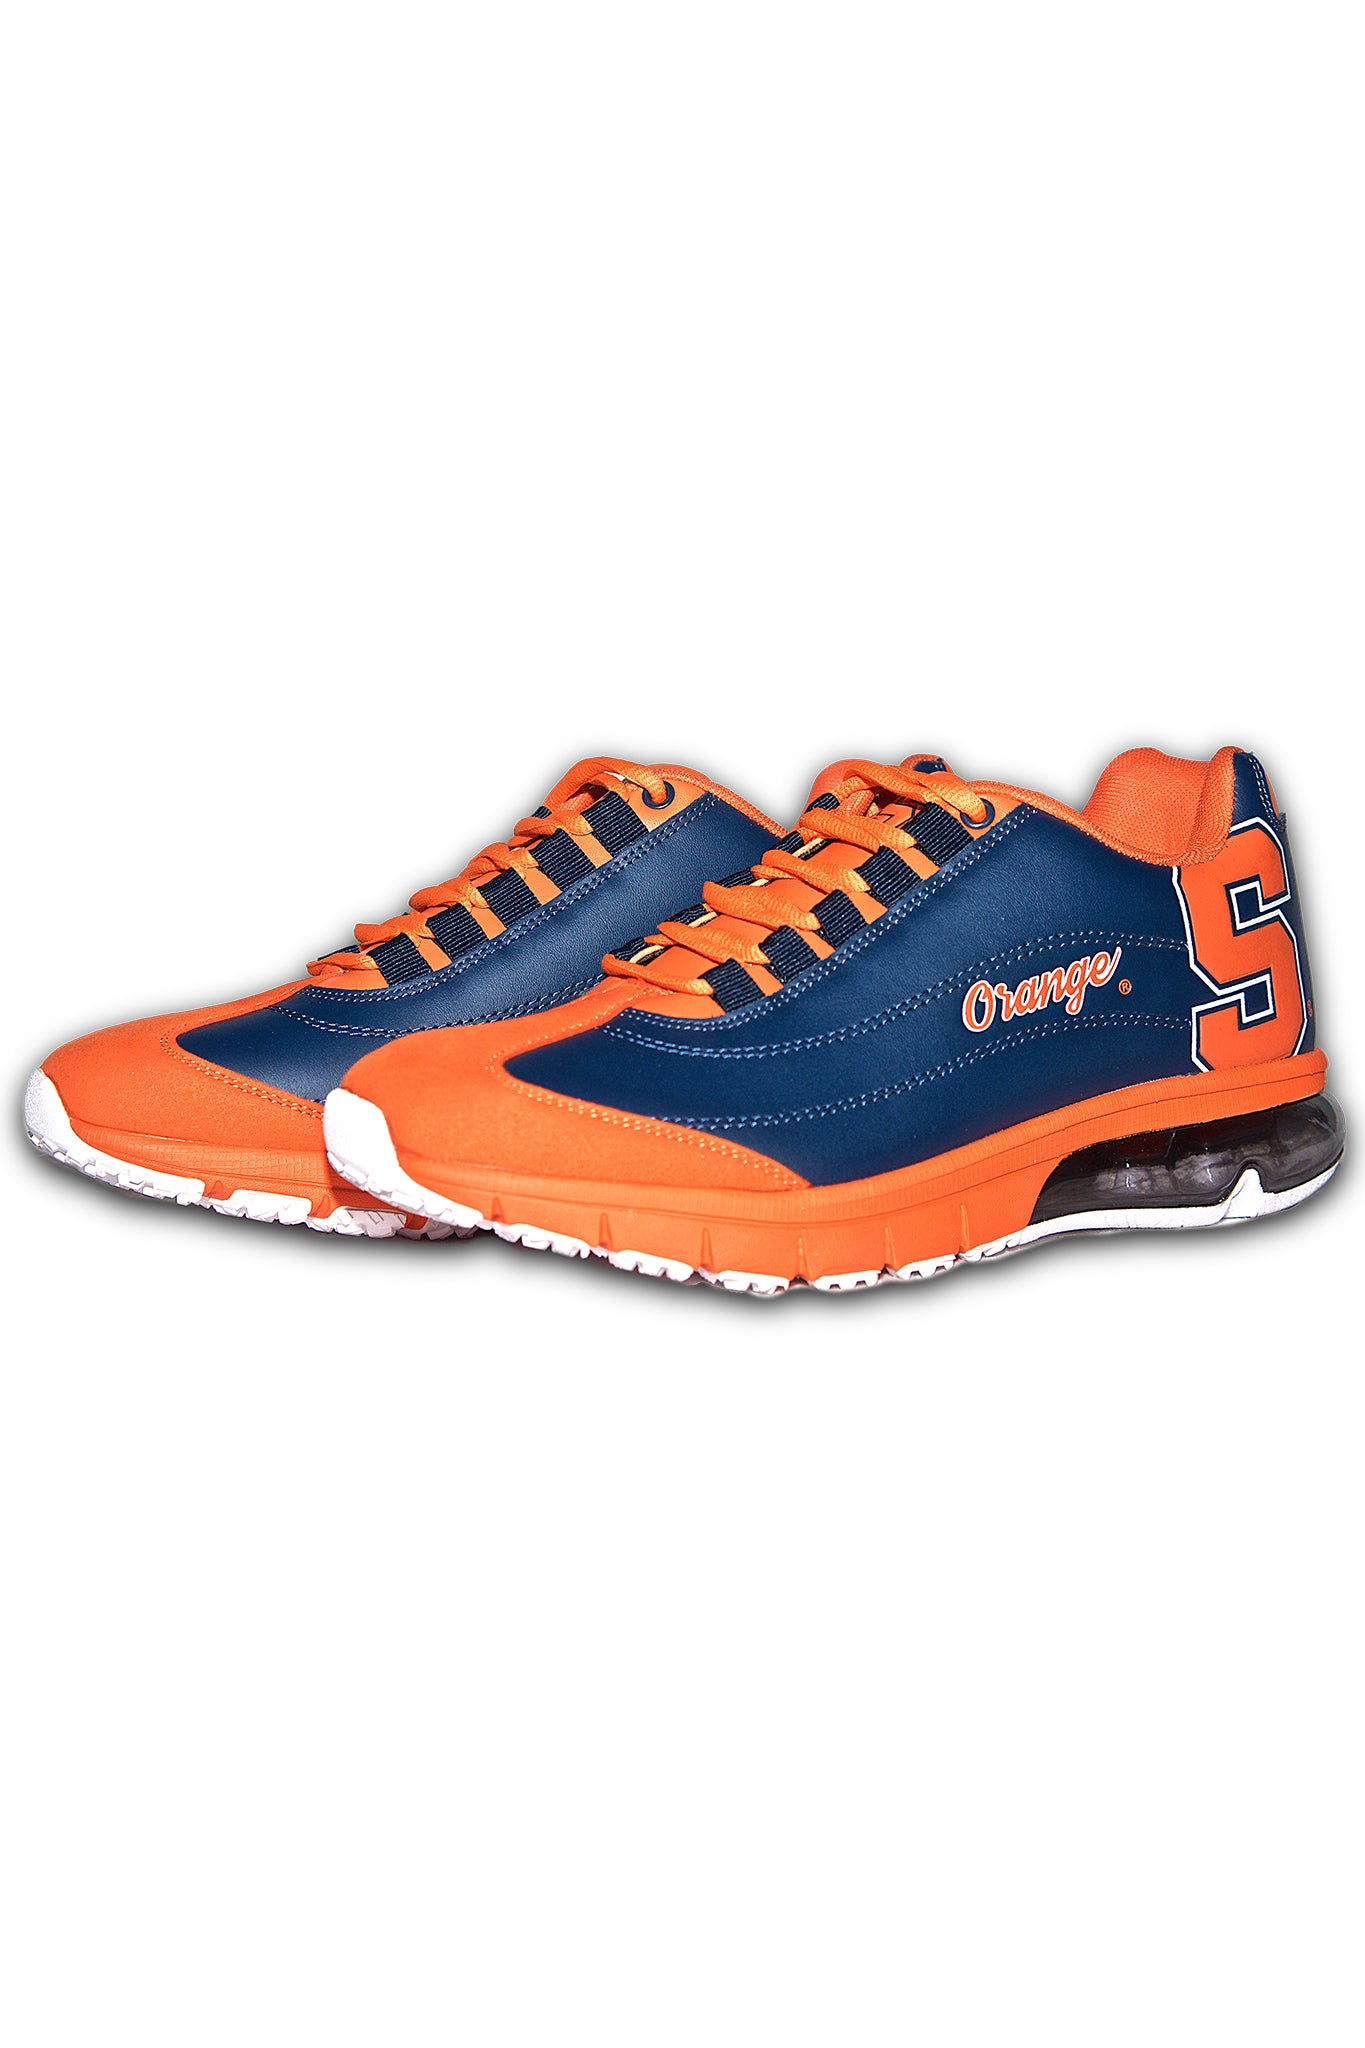 SYRACUSE MEN'S  Collegiate Sneakers-NAVY